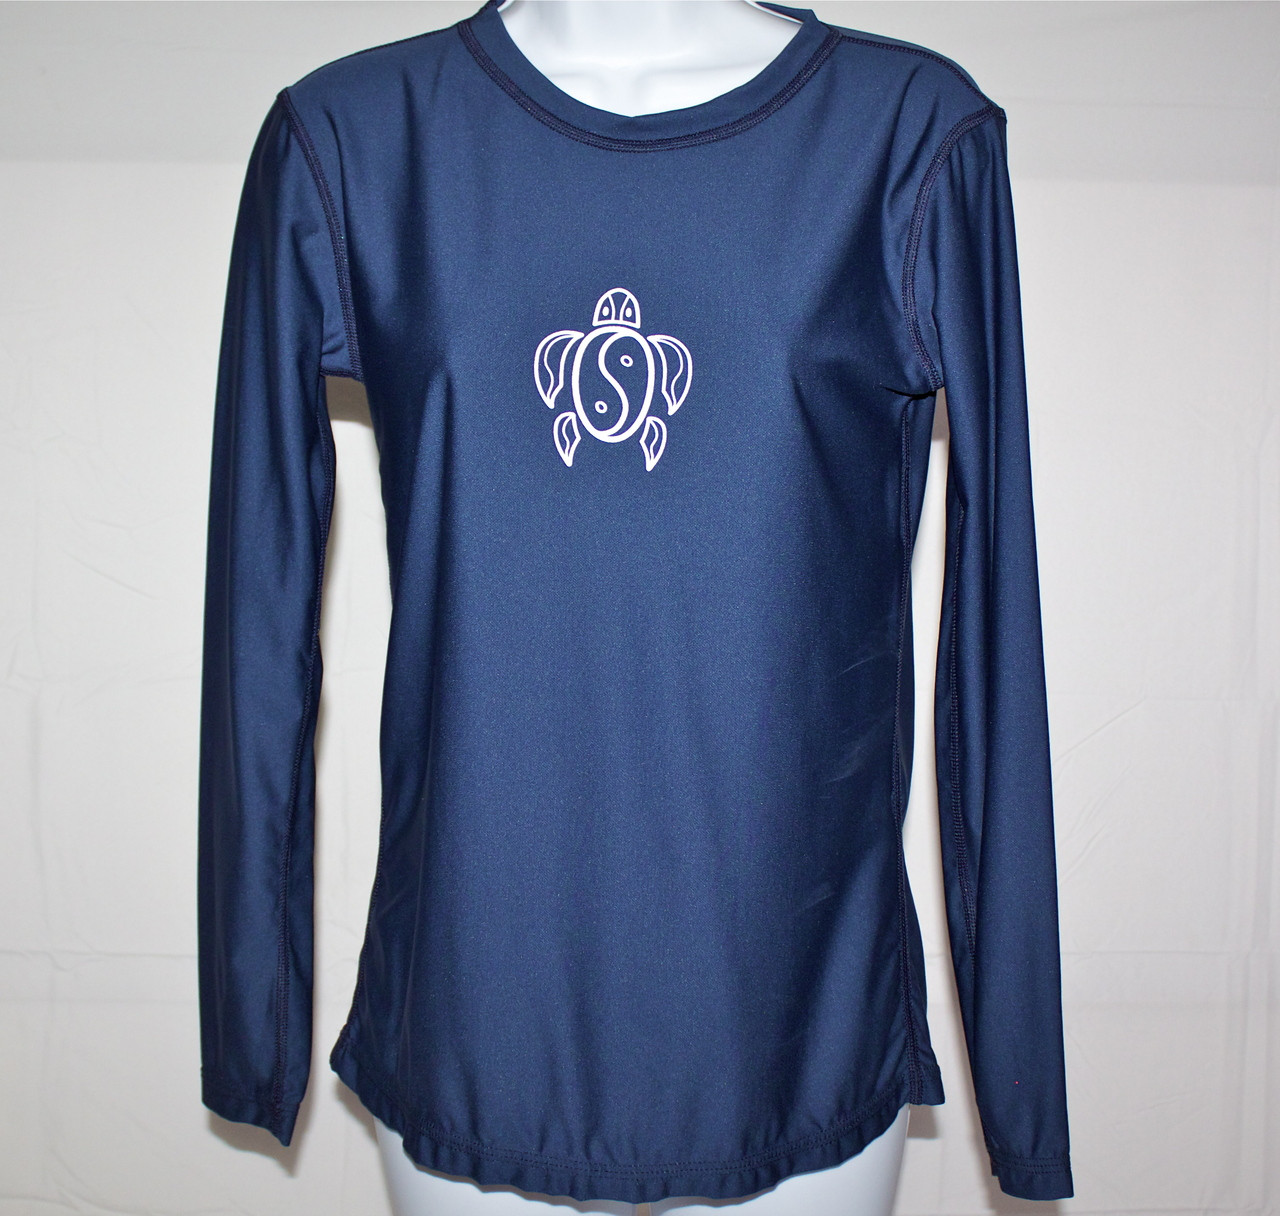 321e86972 ... Women's Long Sleeve Navy Honu UV Shirt. Image 1. Image 1. Image 2.  Image 3. See 2 more pictures